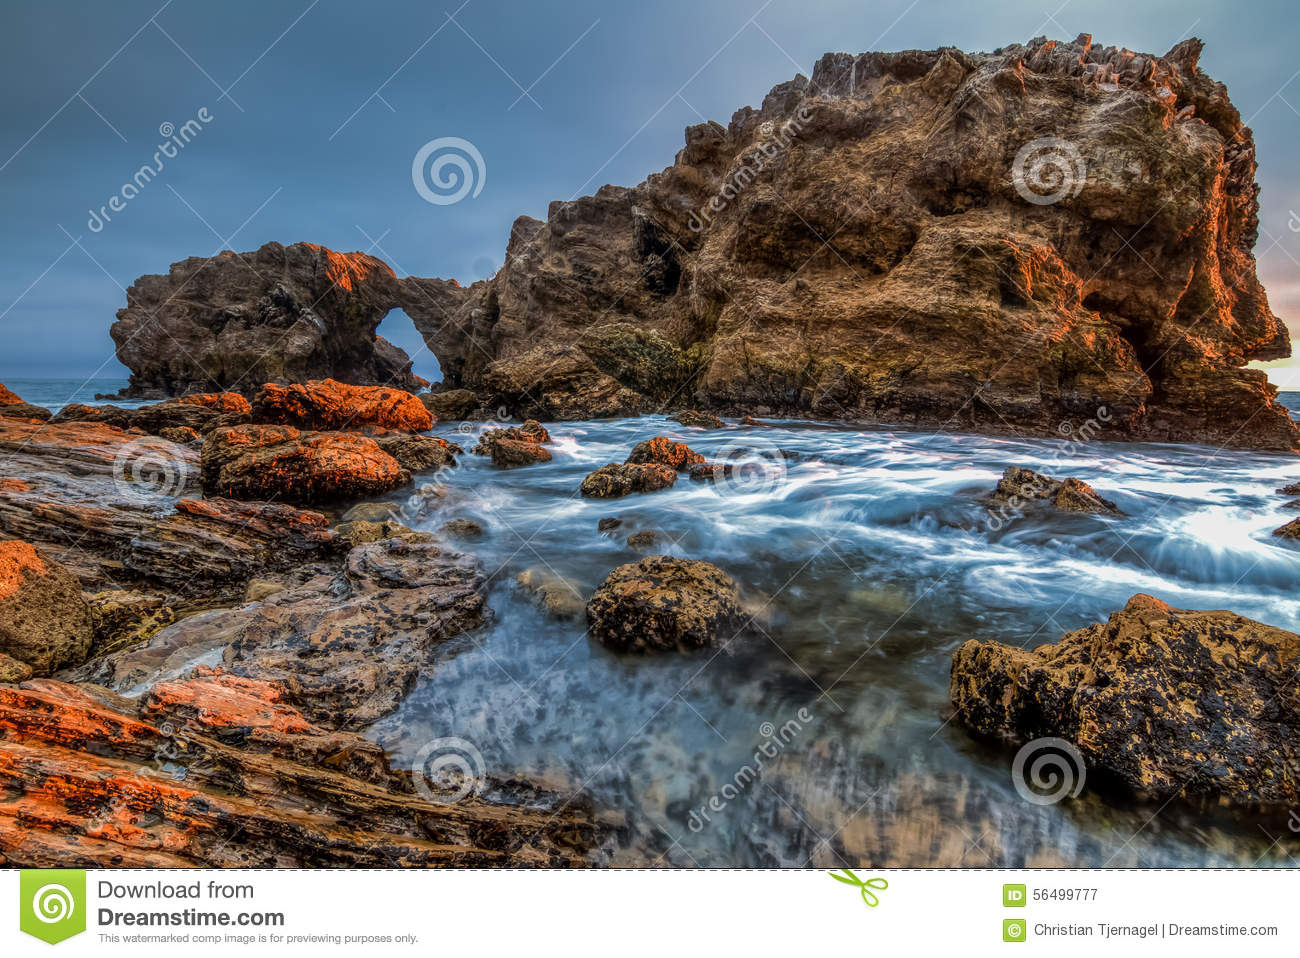 Landscape Boulders Orange County Ca : Sea cave with ocean wide view stock illustration cartoondealer